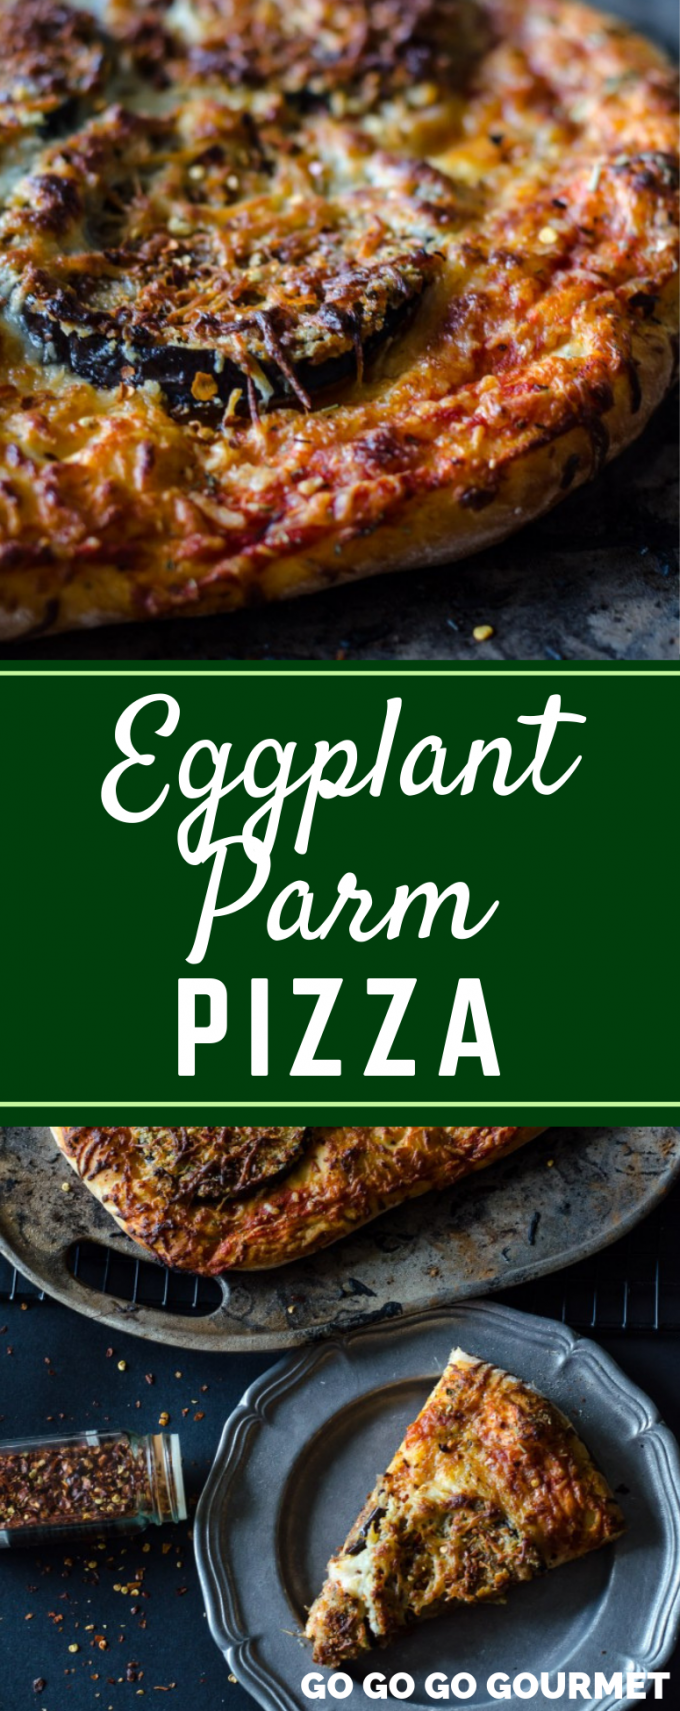 This easy Eggplant Parmigiana Pizza recipe is a delicious way to embrace the flavors of Italy! Full of authentic Italian flavor, this vegetarian dish is sure to become an instant family favorite! #gogogogourmet #eggplantparmigianapizza #eggplantparmigiana #eggplantparmesan via @gogogogourmet